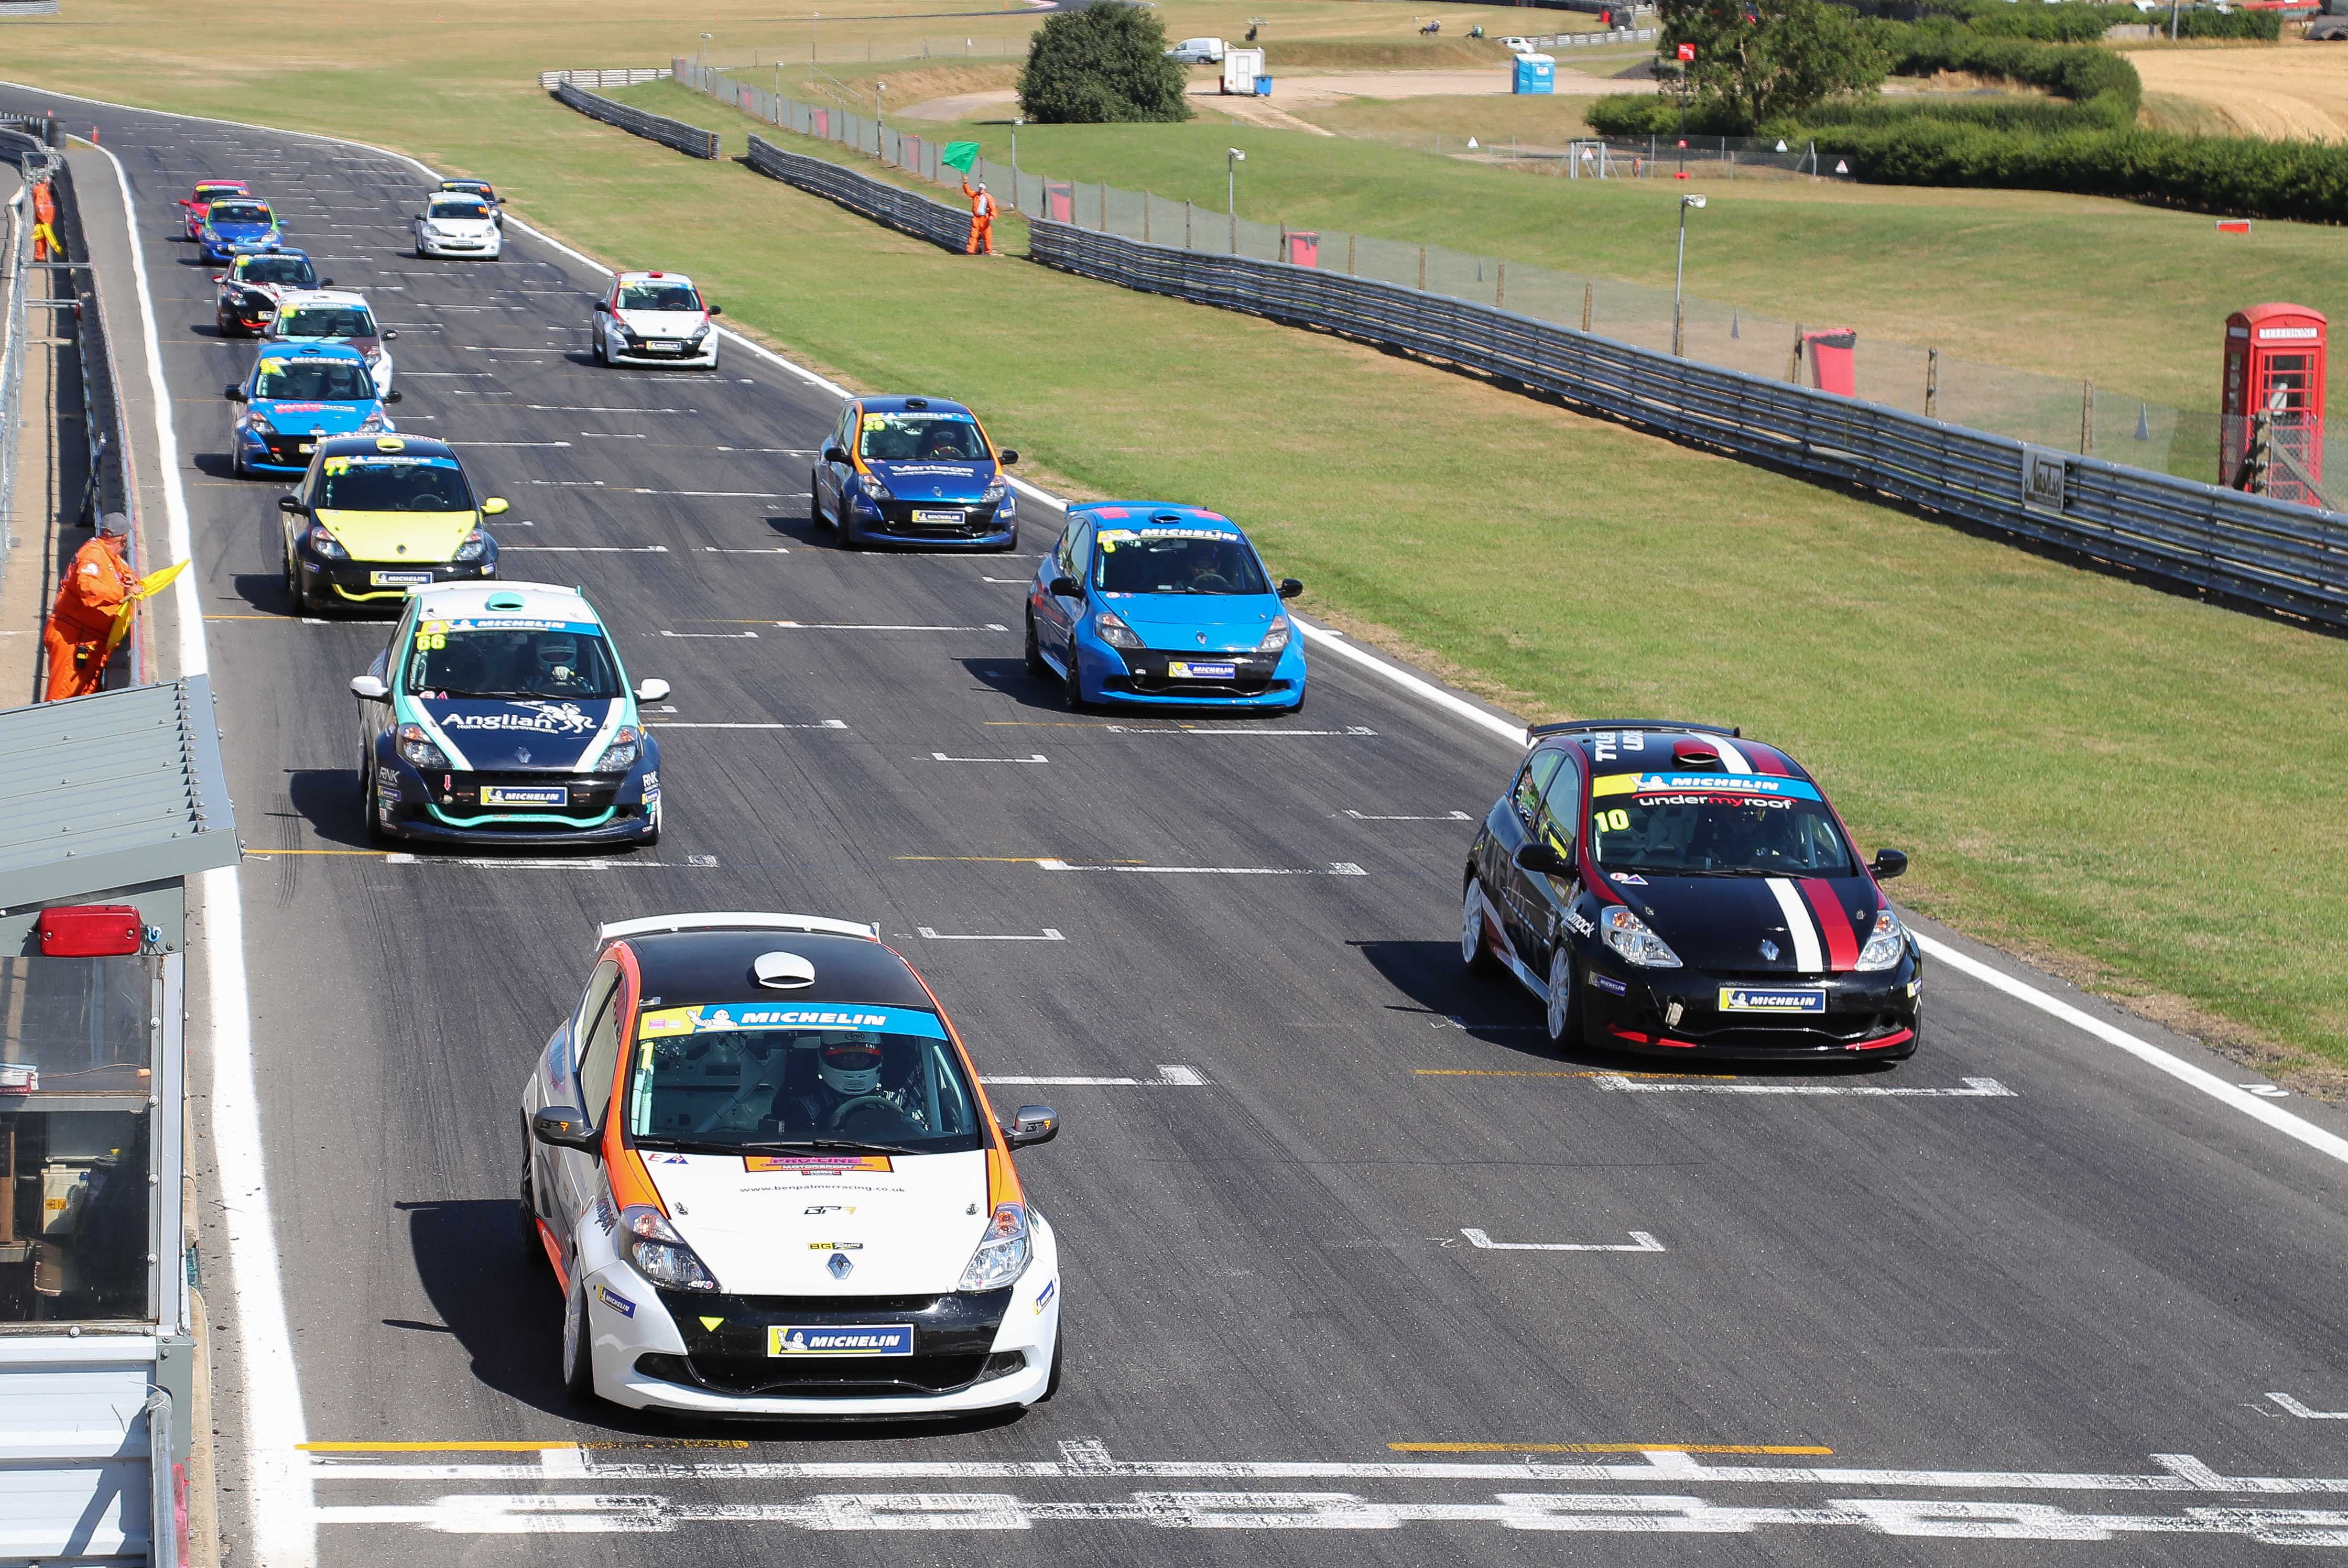 MICHELIN CLIO CUP SERIES SET FOR TRIPLE HEADER AT ANGLESEY